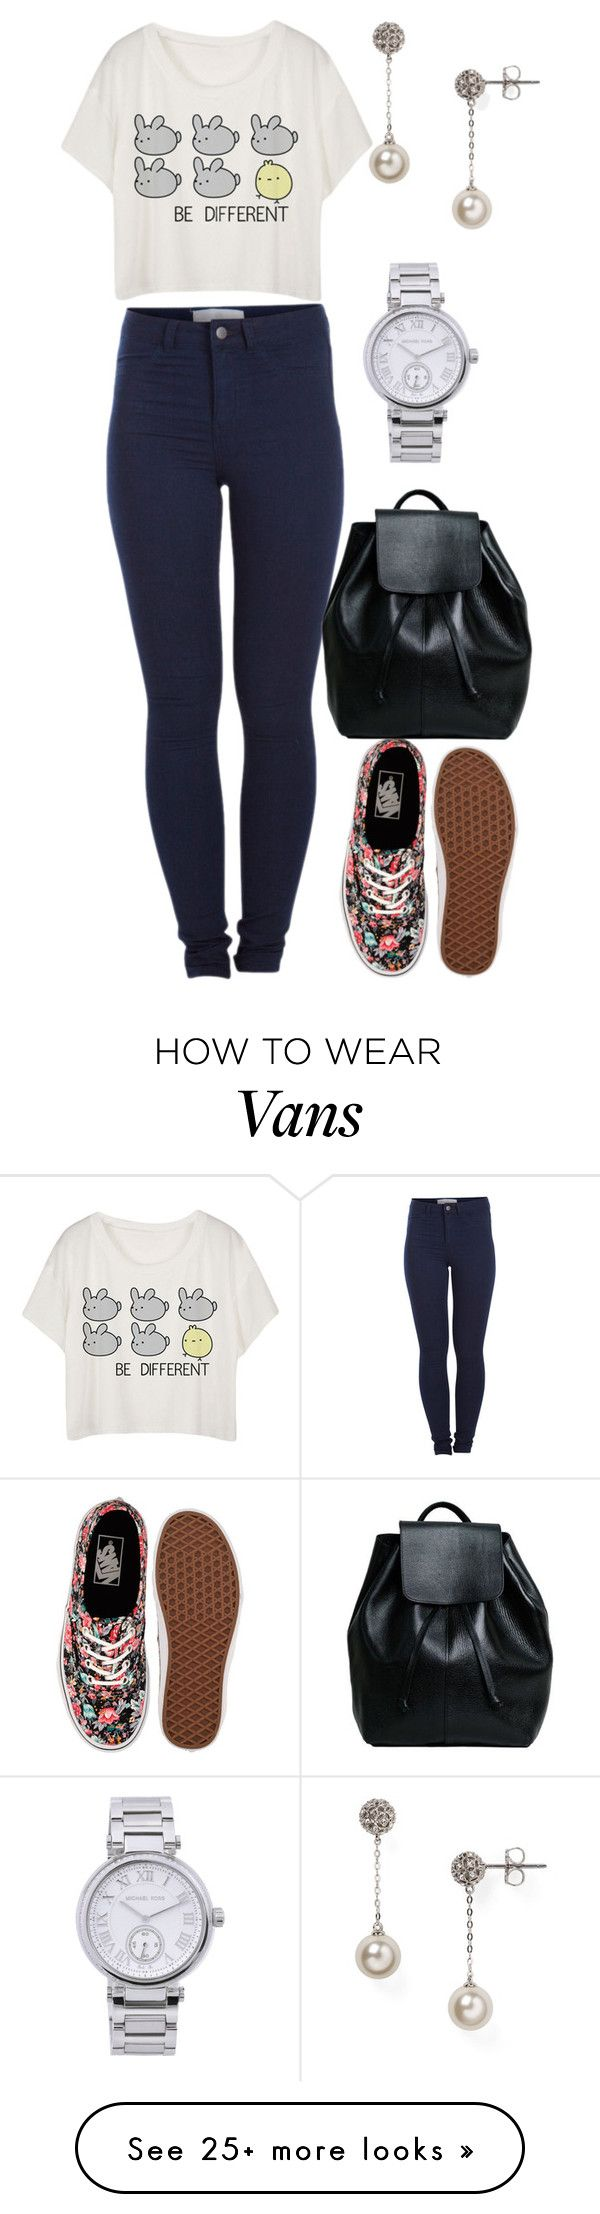 """""""Untitled #283"""" by rhay-q on Polyvore featuring Pieces, Nadri, Vans, Michael Kors, women's clothing, women, female, woman, misses and juniors"""